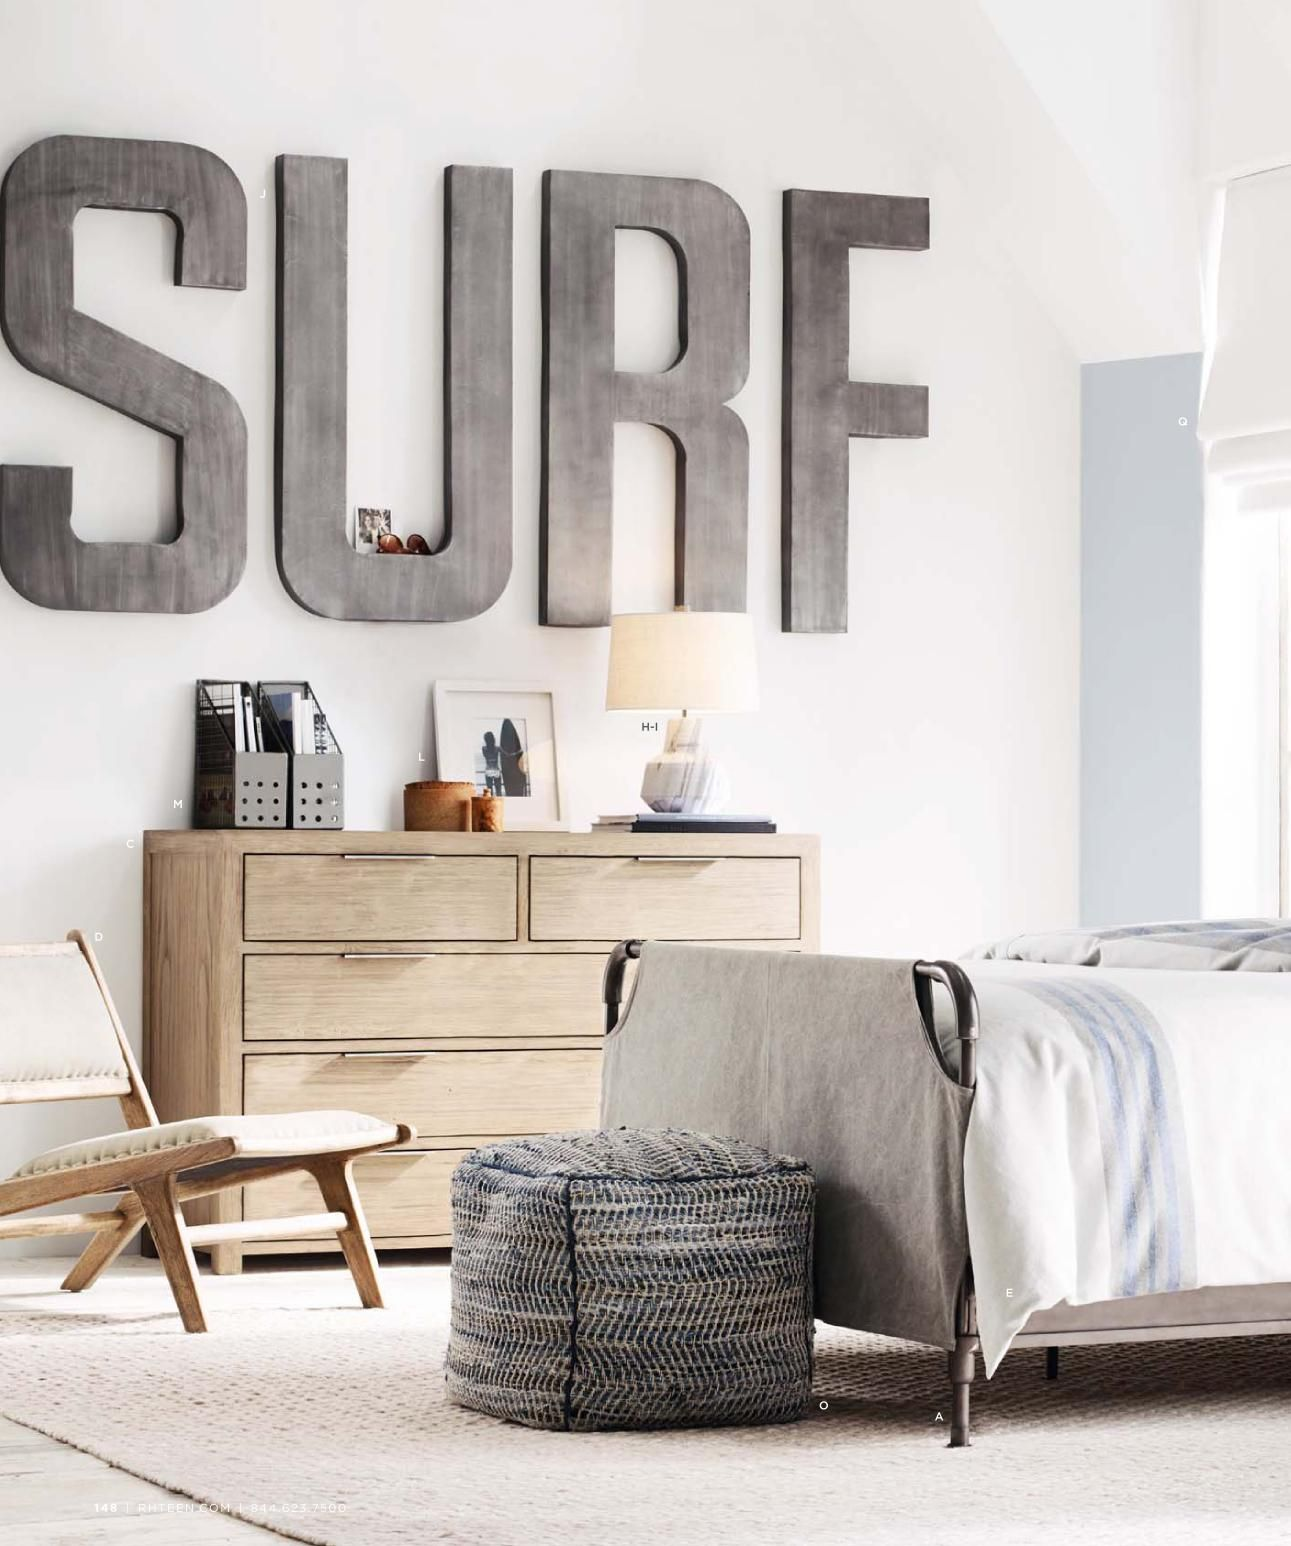 SURF Bedroom More